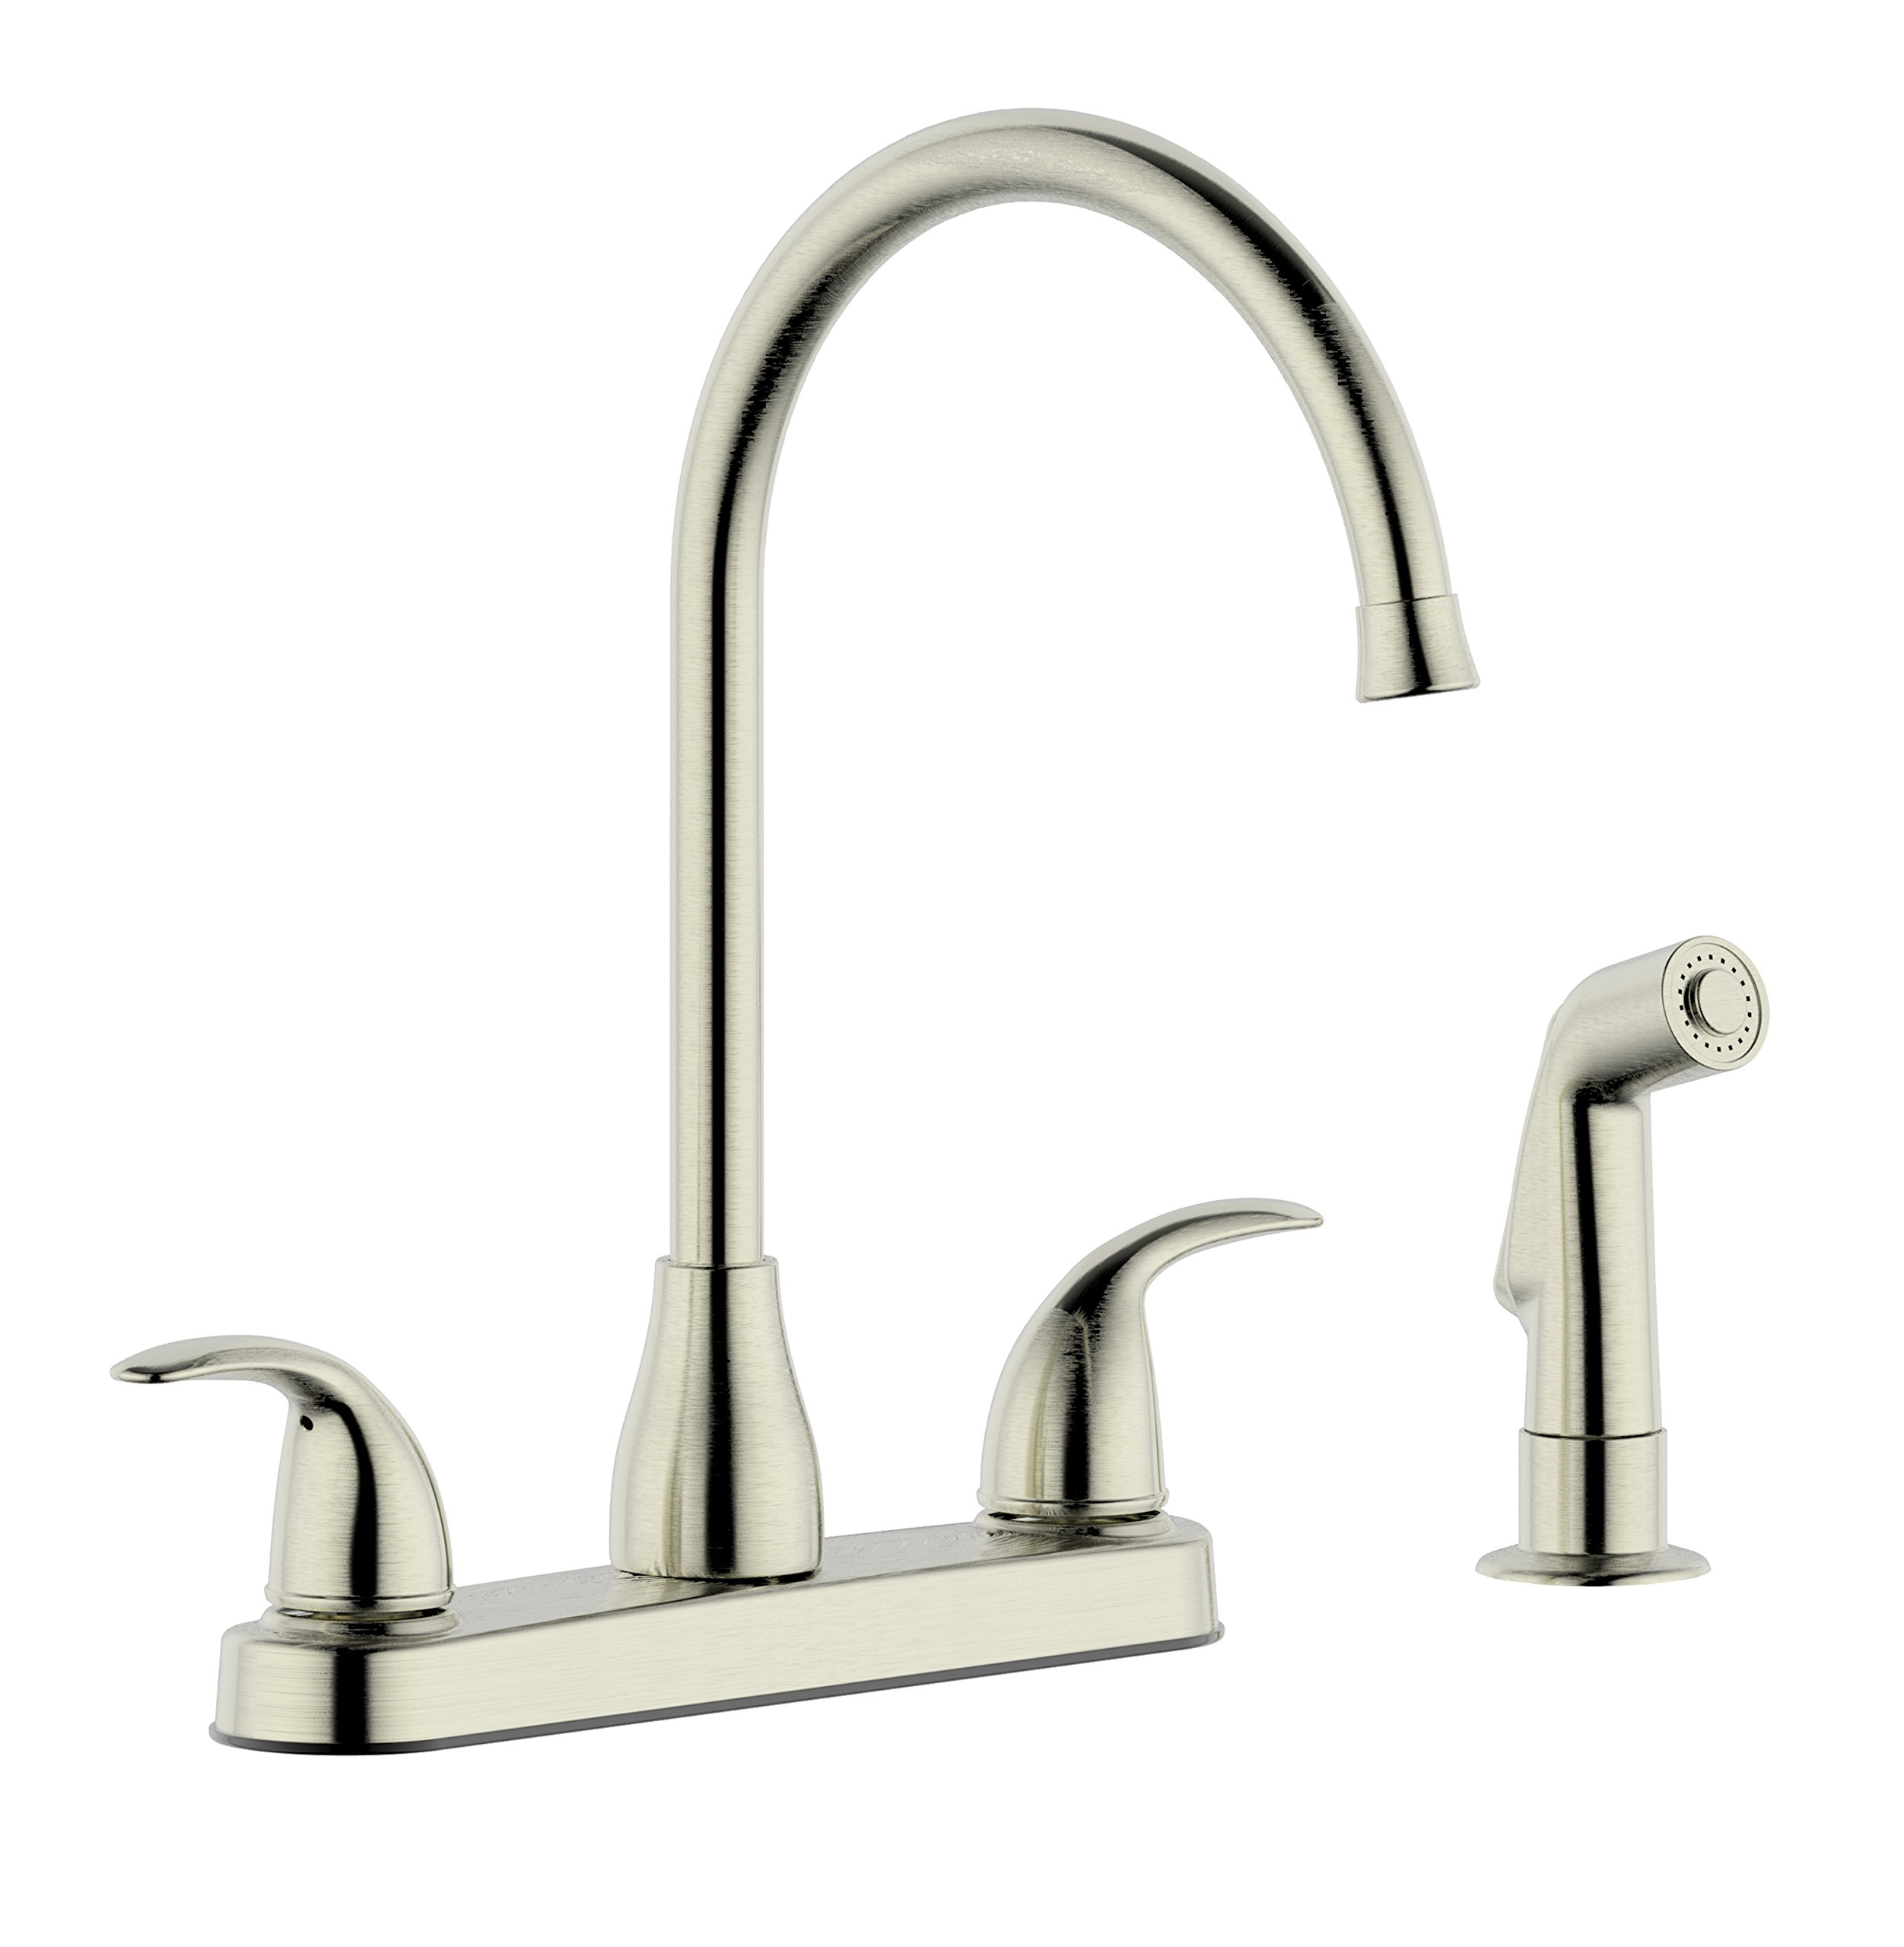 Derengge KFW8303 8'' Two Handle Kitchen Faucet with Contemporary Side Spray,Meets with cUPC NSF61-9 and AB1953 Lead Free Standard, Stainless Steel